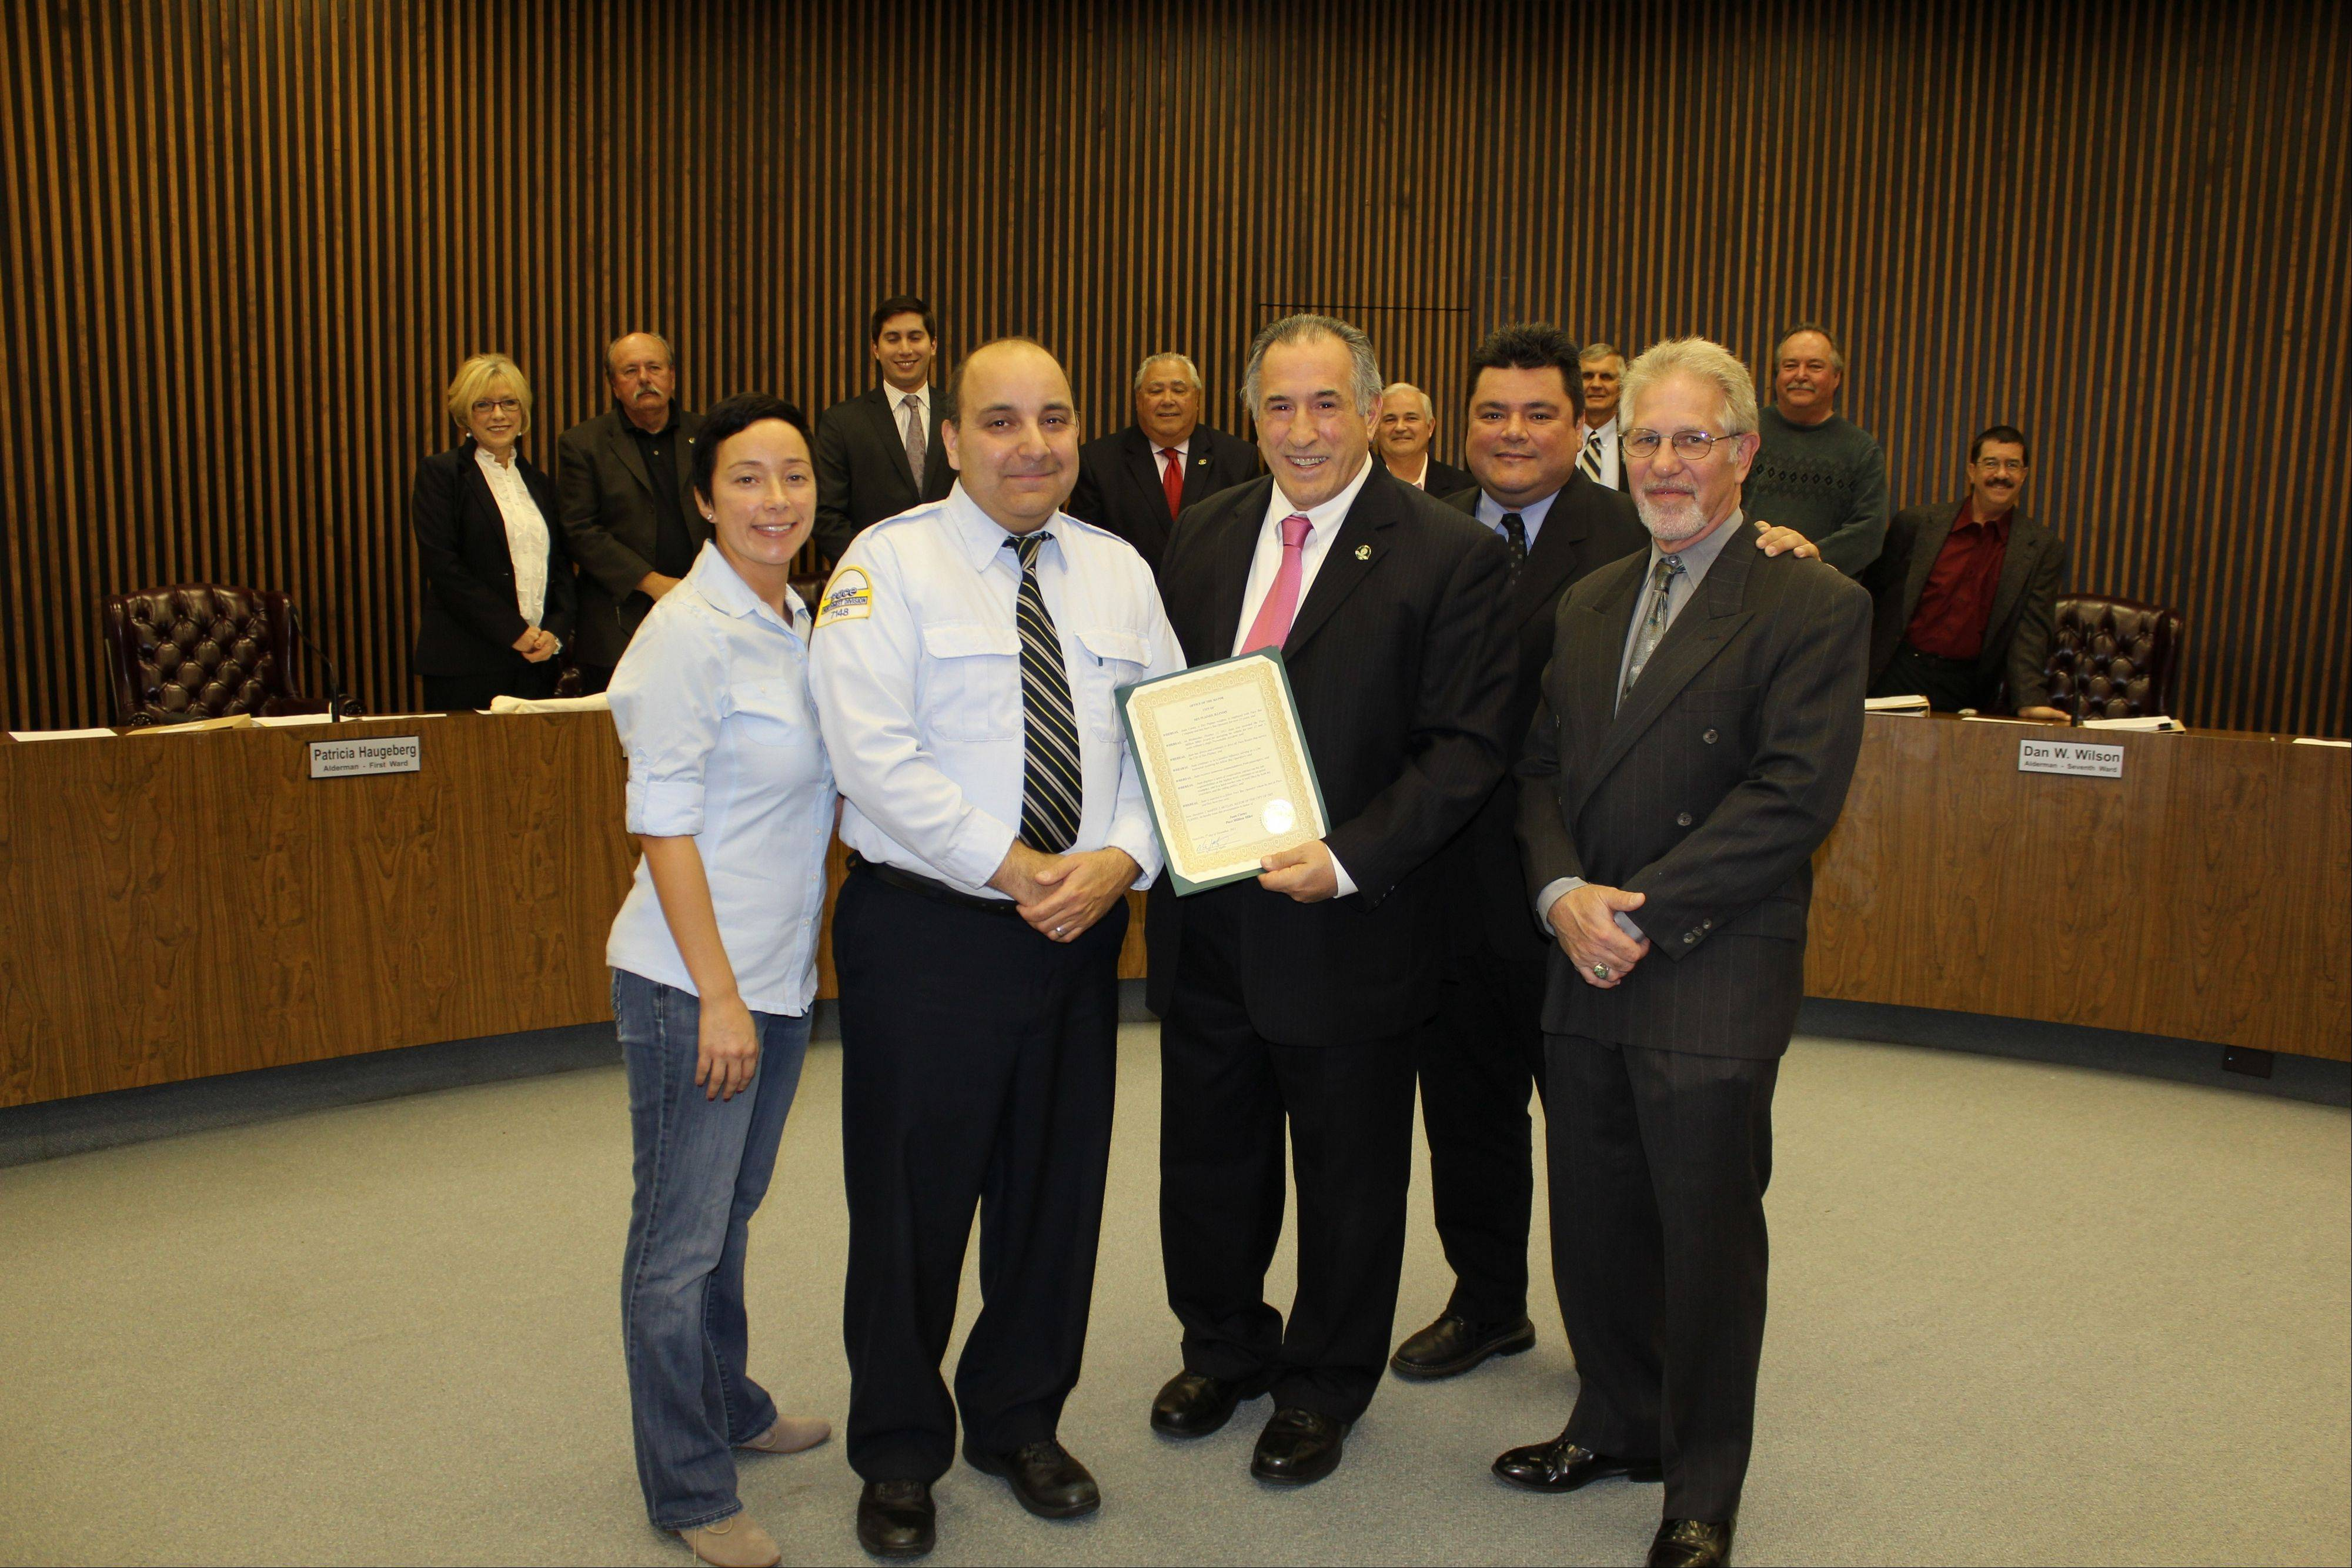 Pictured, from left, are: Front row: Gina Cortez, Juan Cortez, Mayor Moylan, Pace Assistant Superintendent of Transportation James Barsano and Pace safety and training manager Mike Strauss; back row: 1st Ward Alderman Patricia Haugeberg, 2nd Ward Alderman John Robinson, 3rd Ward Alderman Matt Bogusz, 4th Ward Alderman Dick Sayad, 5th Ward Alderman James Brookman, 7th Ward Alderman Dan W. Wilson, 6th Ward Alderman Mark Walsten, and 8th Ward Alderman Mike Charewicz.